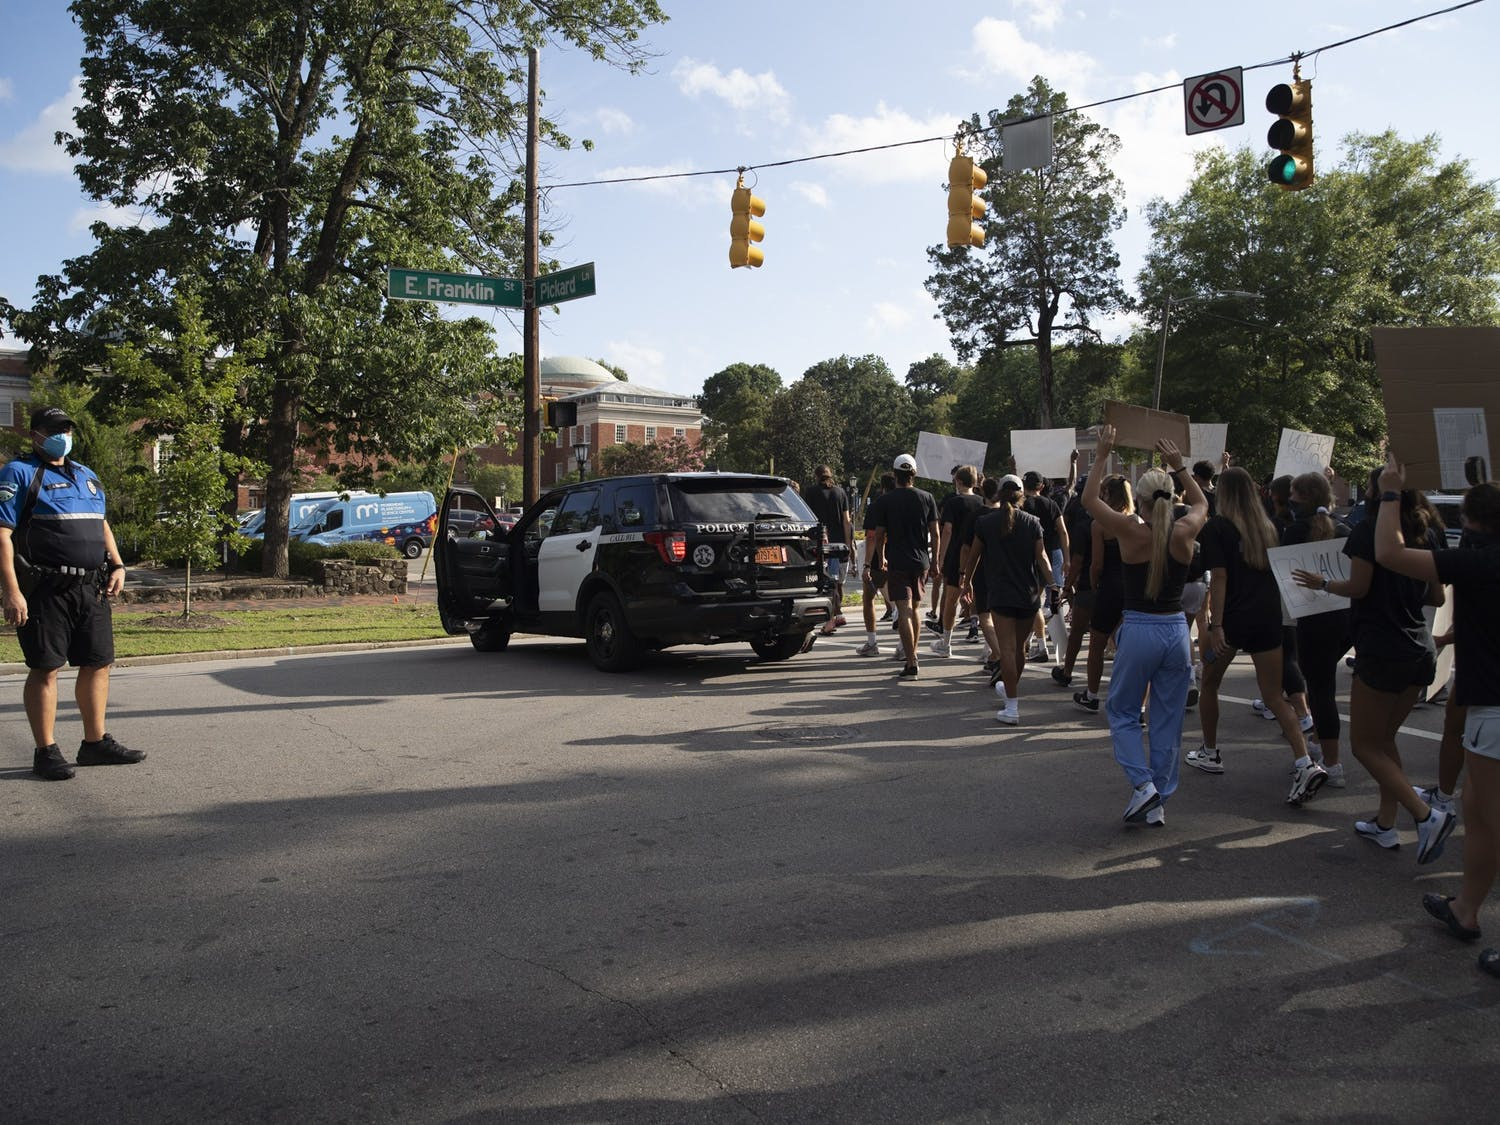 UNC athletes marched along Franklin Street to protest racial injustice on Aug. 29, 2020 in Chapel Hill, N.C. Athletes representing various UNC sports dressed in black, brought signs and called for the end of police brutality shortly after police shot Jacob Blake seven times in the back in Kenosha, Wis., on Aug. 23, 2020.